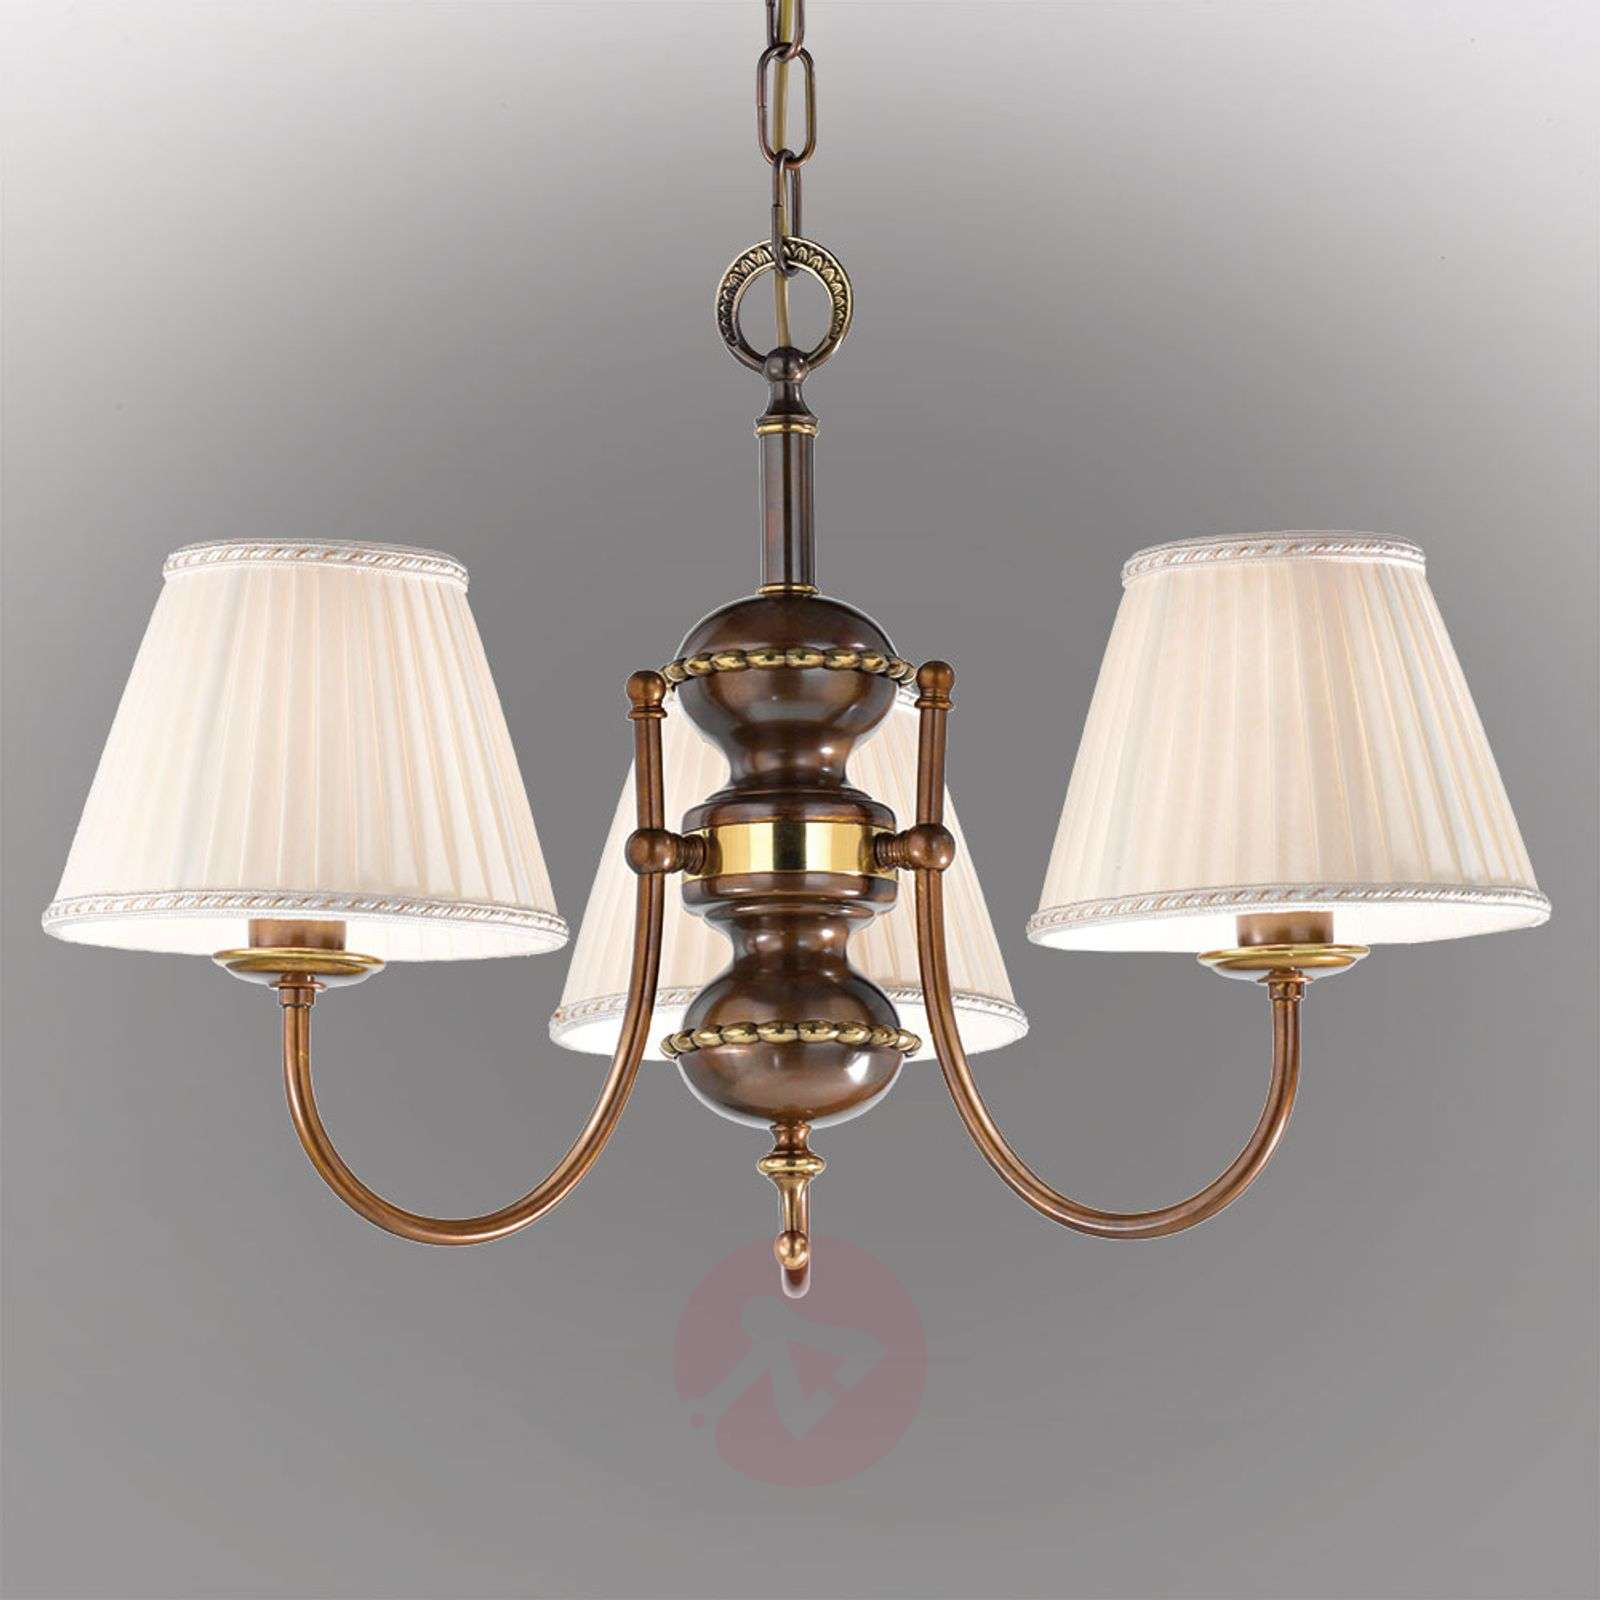 Antique-looking Classic Hanging Light, Three-bulb